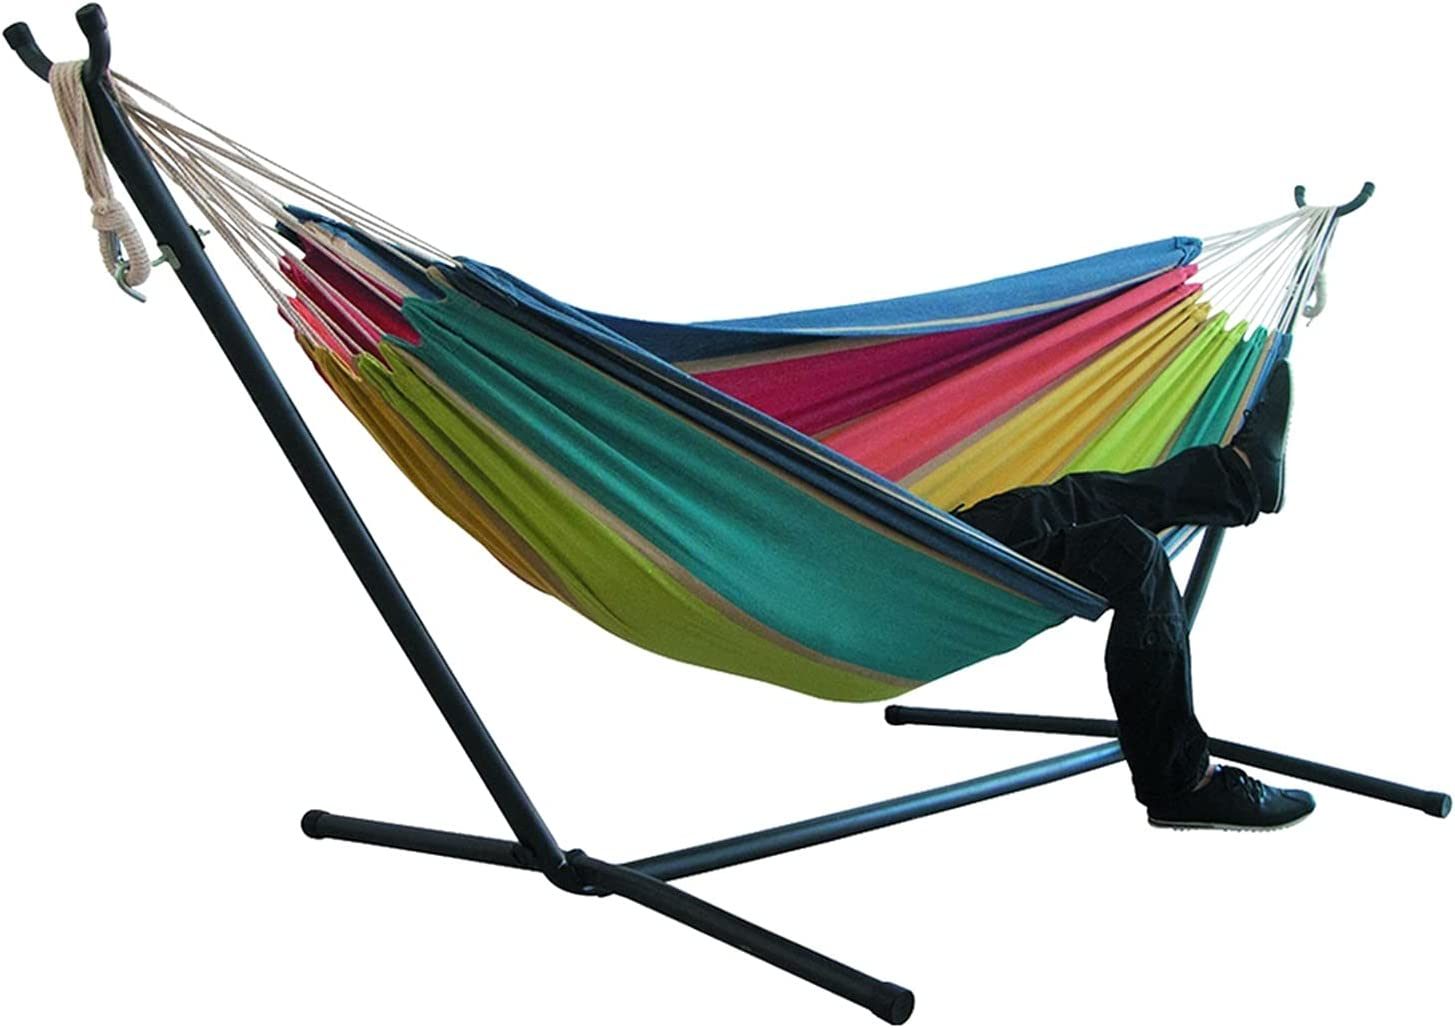 ppqq Very Practical Portable Regular dealer Canvas Hammock 2021new shipping free Swing Thicken Chair